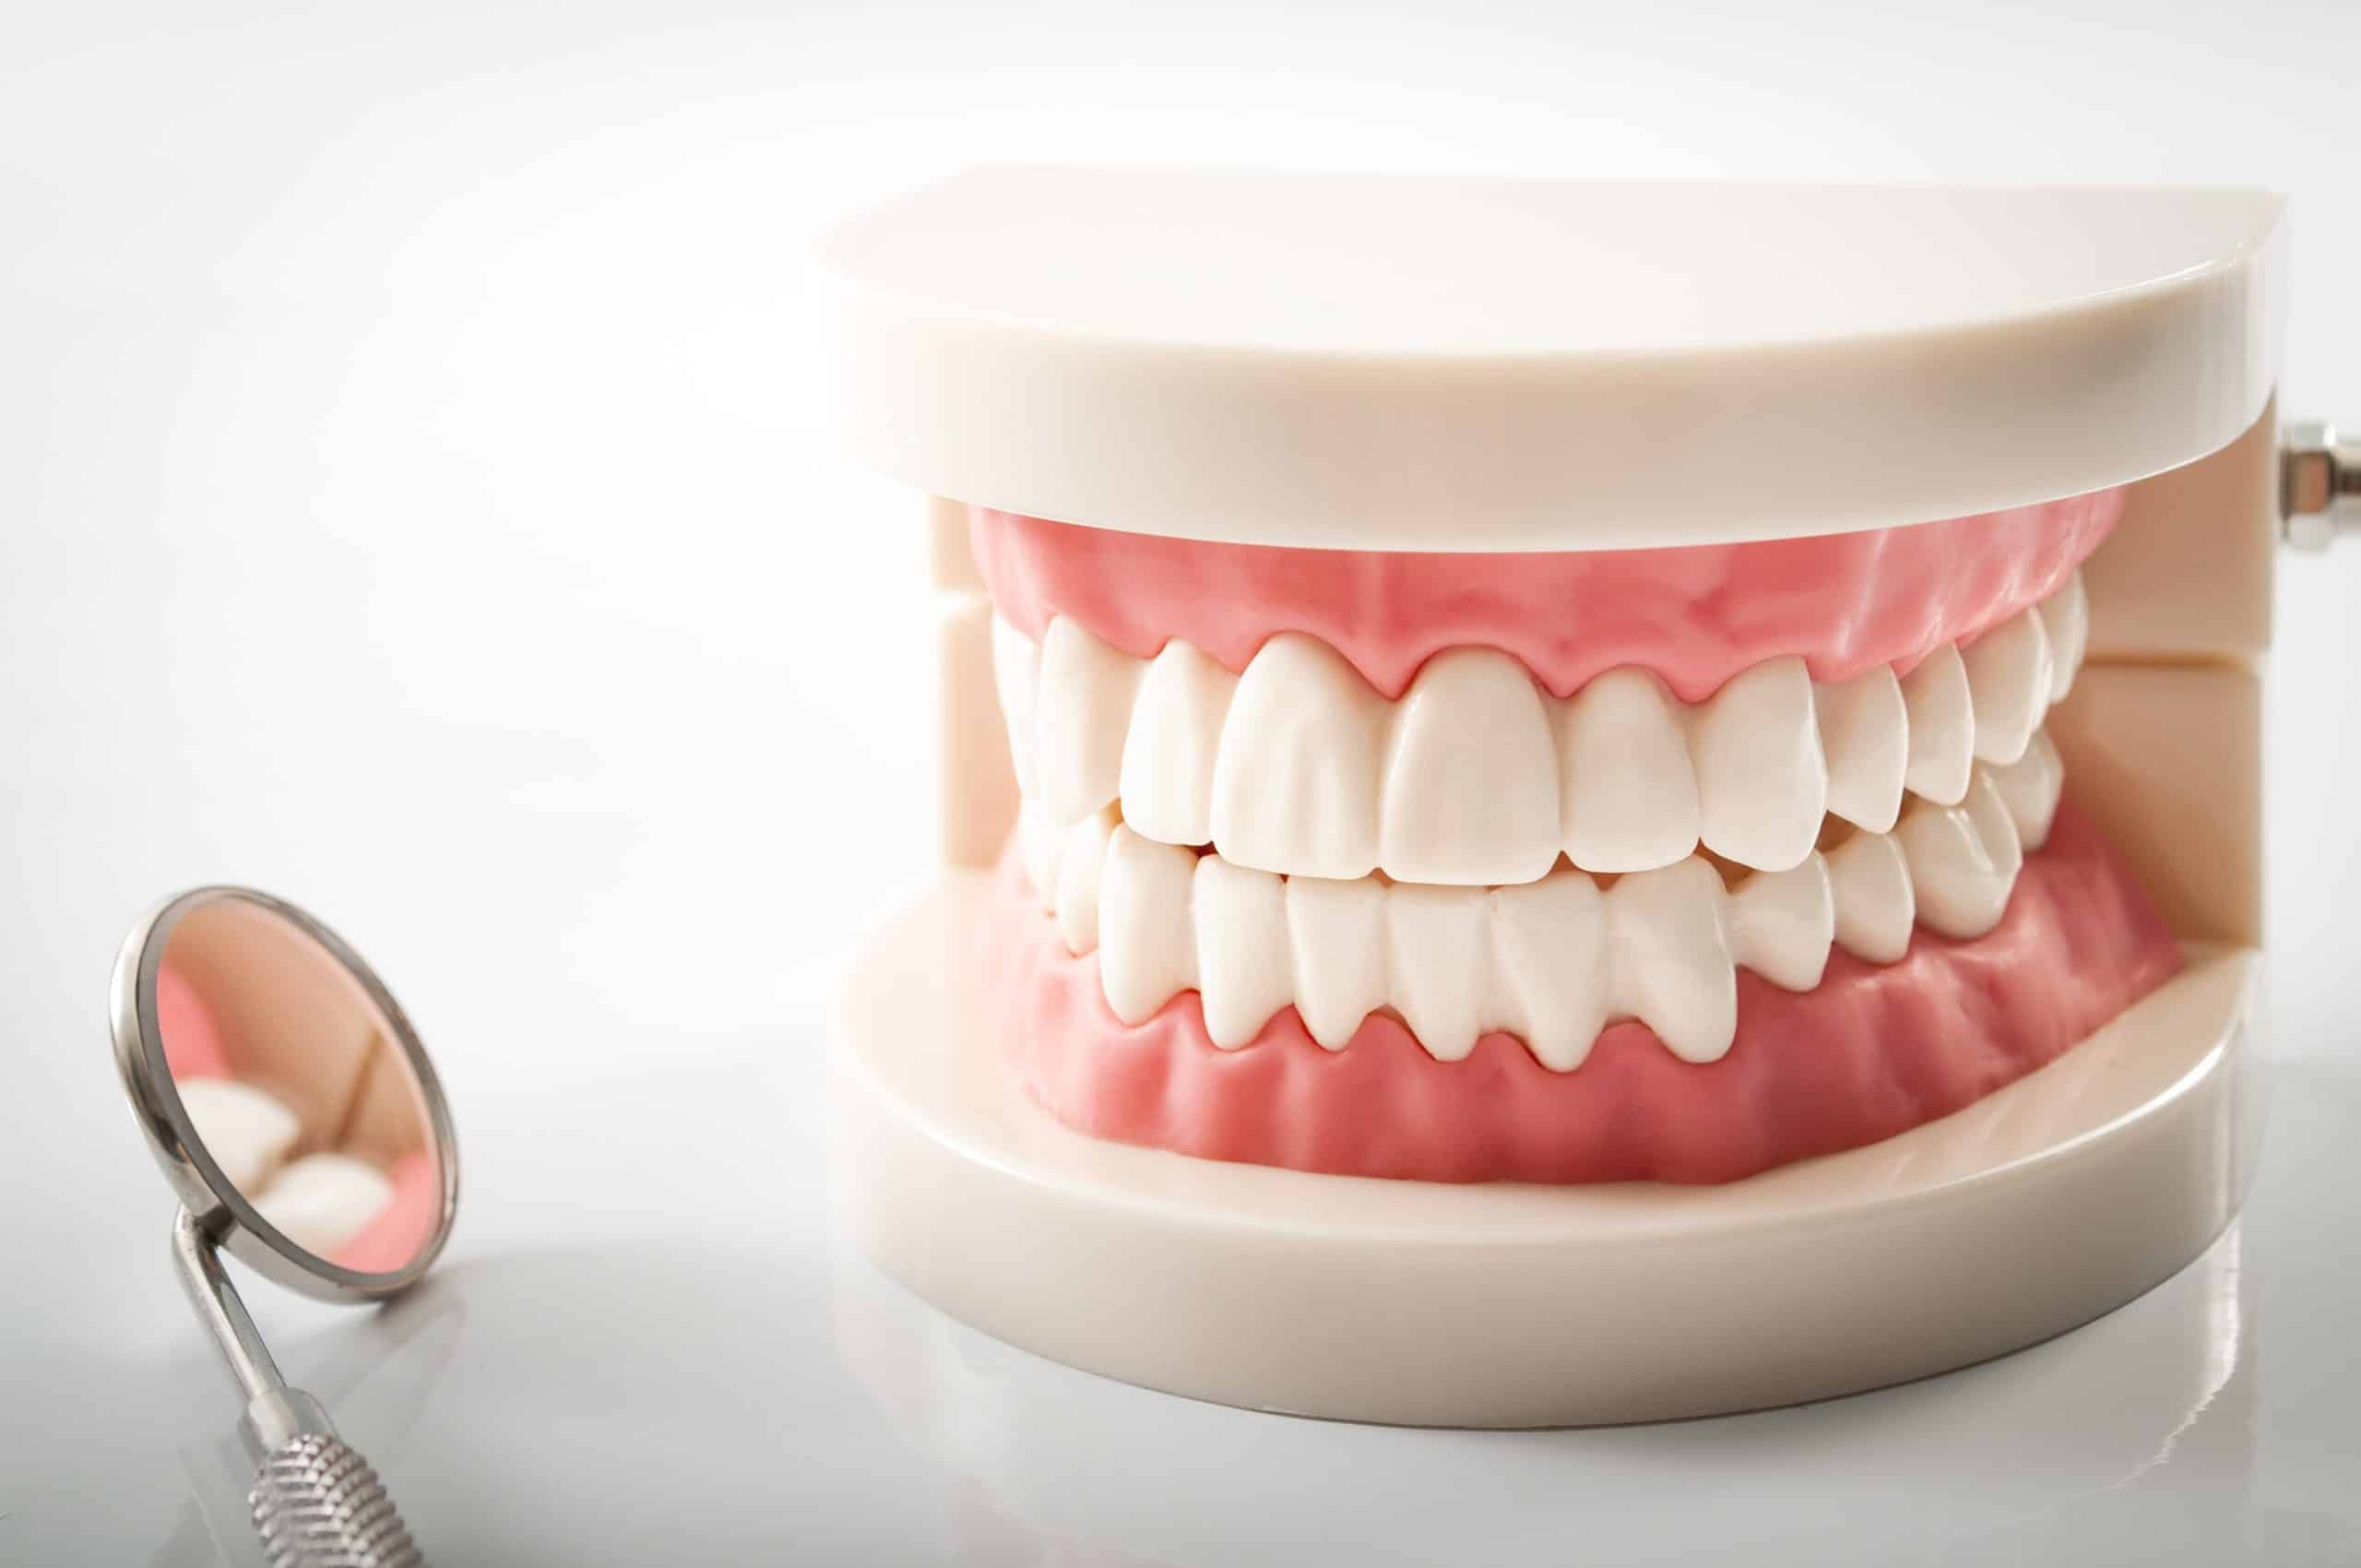 Dentures in Chicago, Evanston, & Skokie